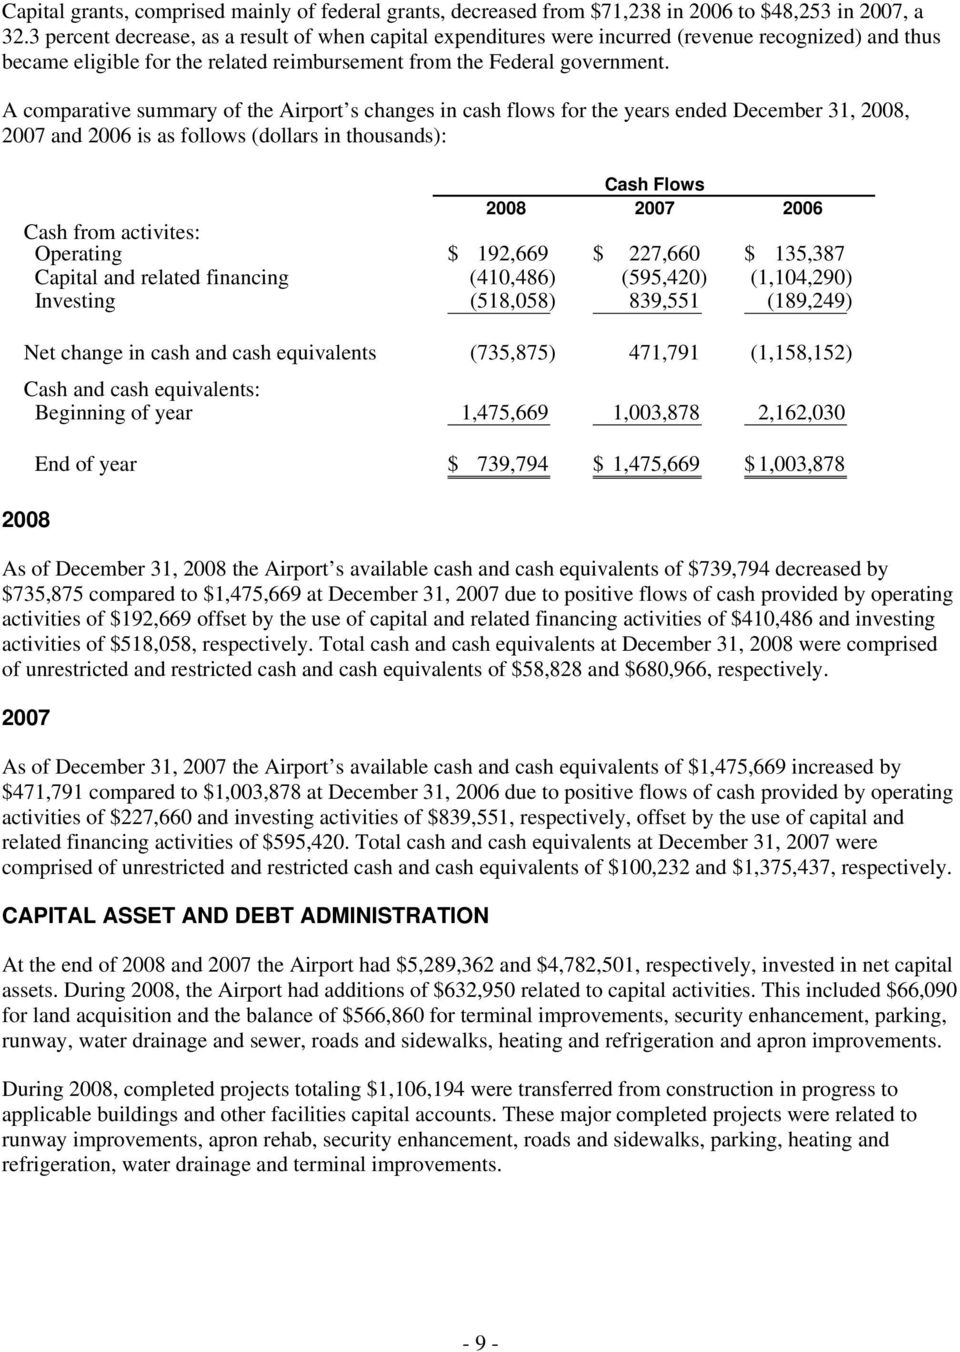 A comparative summary of the Airport s changes in cash flows for the years ended December 31, 2008, 2007 and 2006 is as follows (dollars in thousands): Cash Flows 2008 2007 2006 Cash from activites: